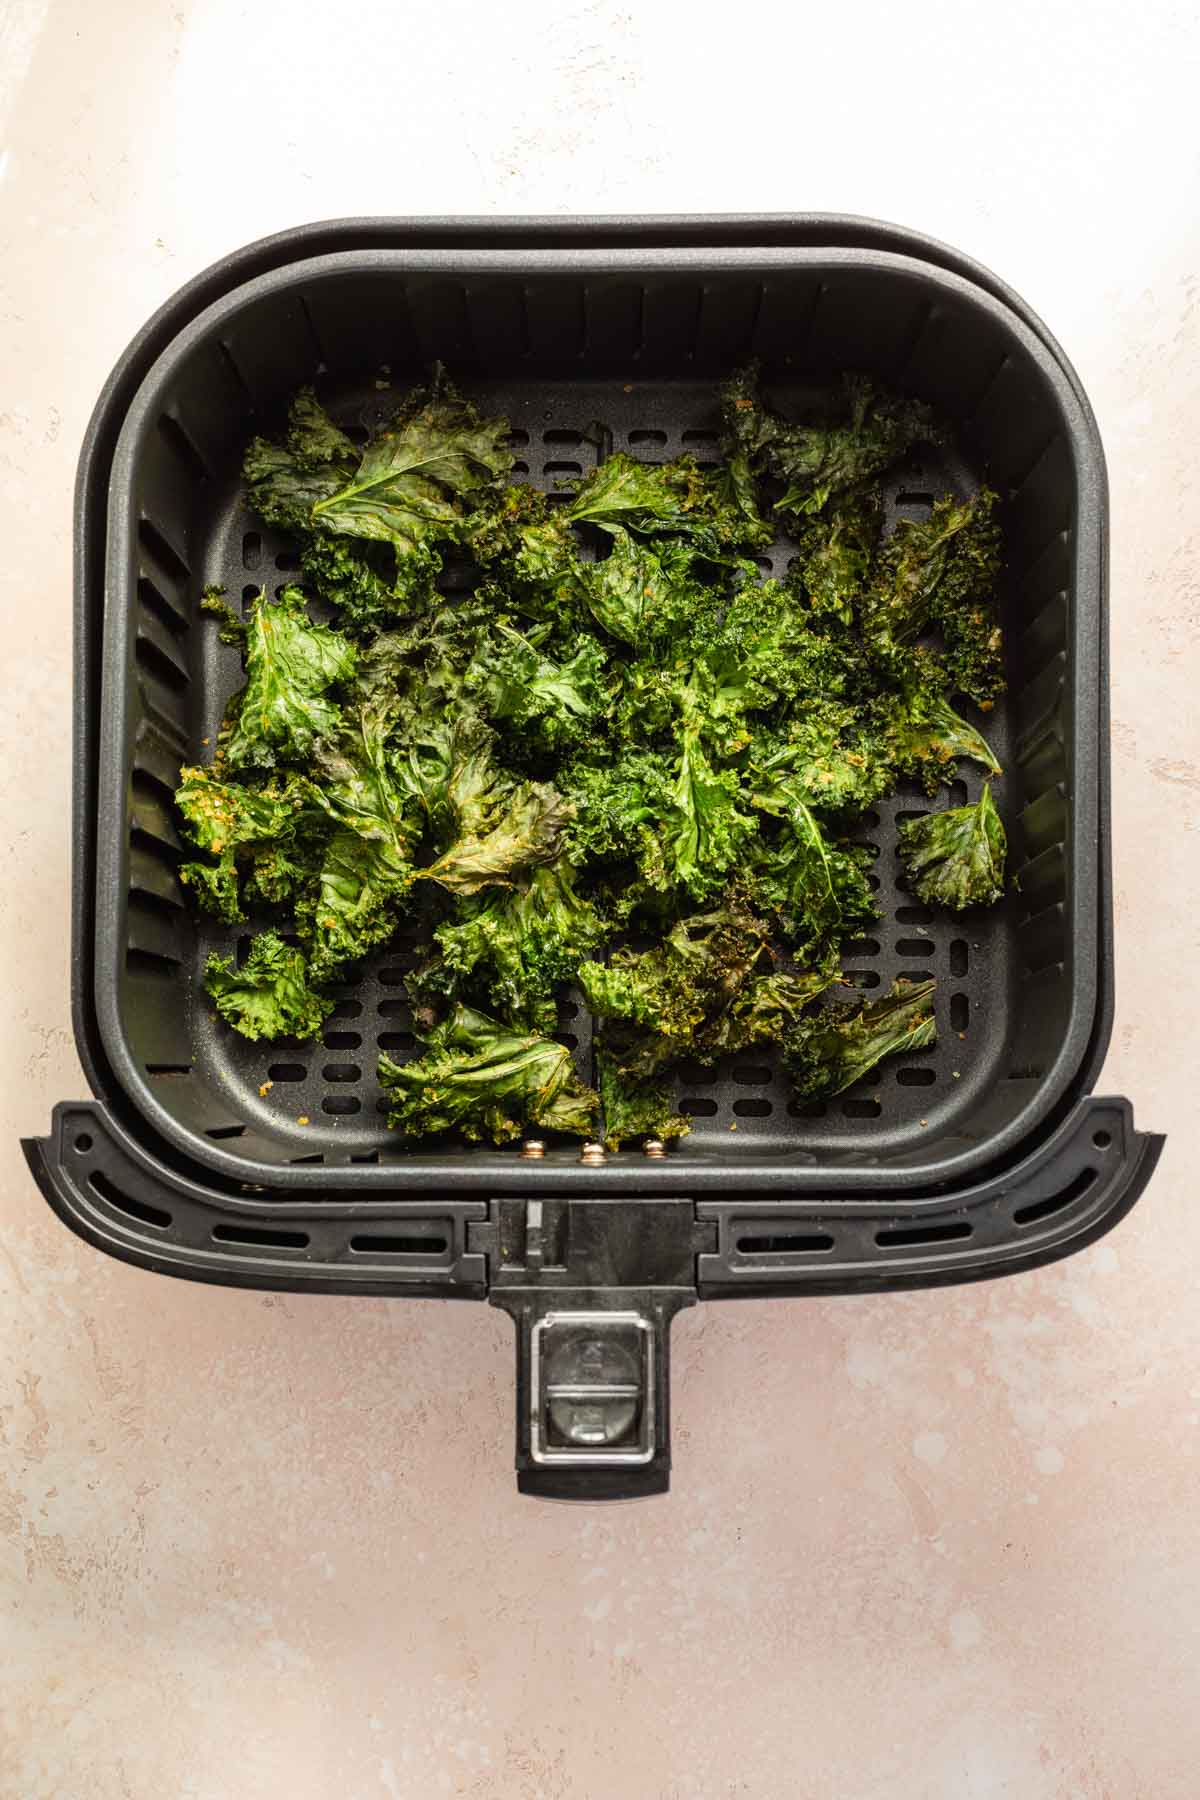 Overhead view of air fried kale chips in an air fryer basket.